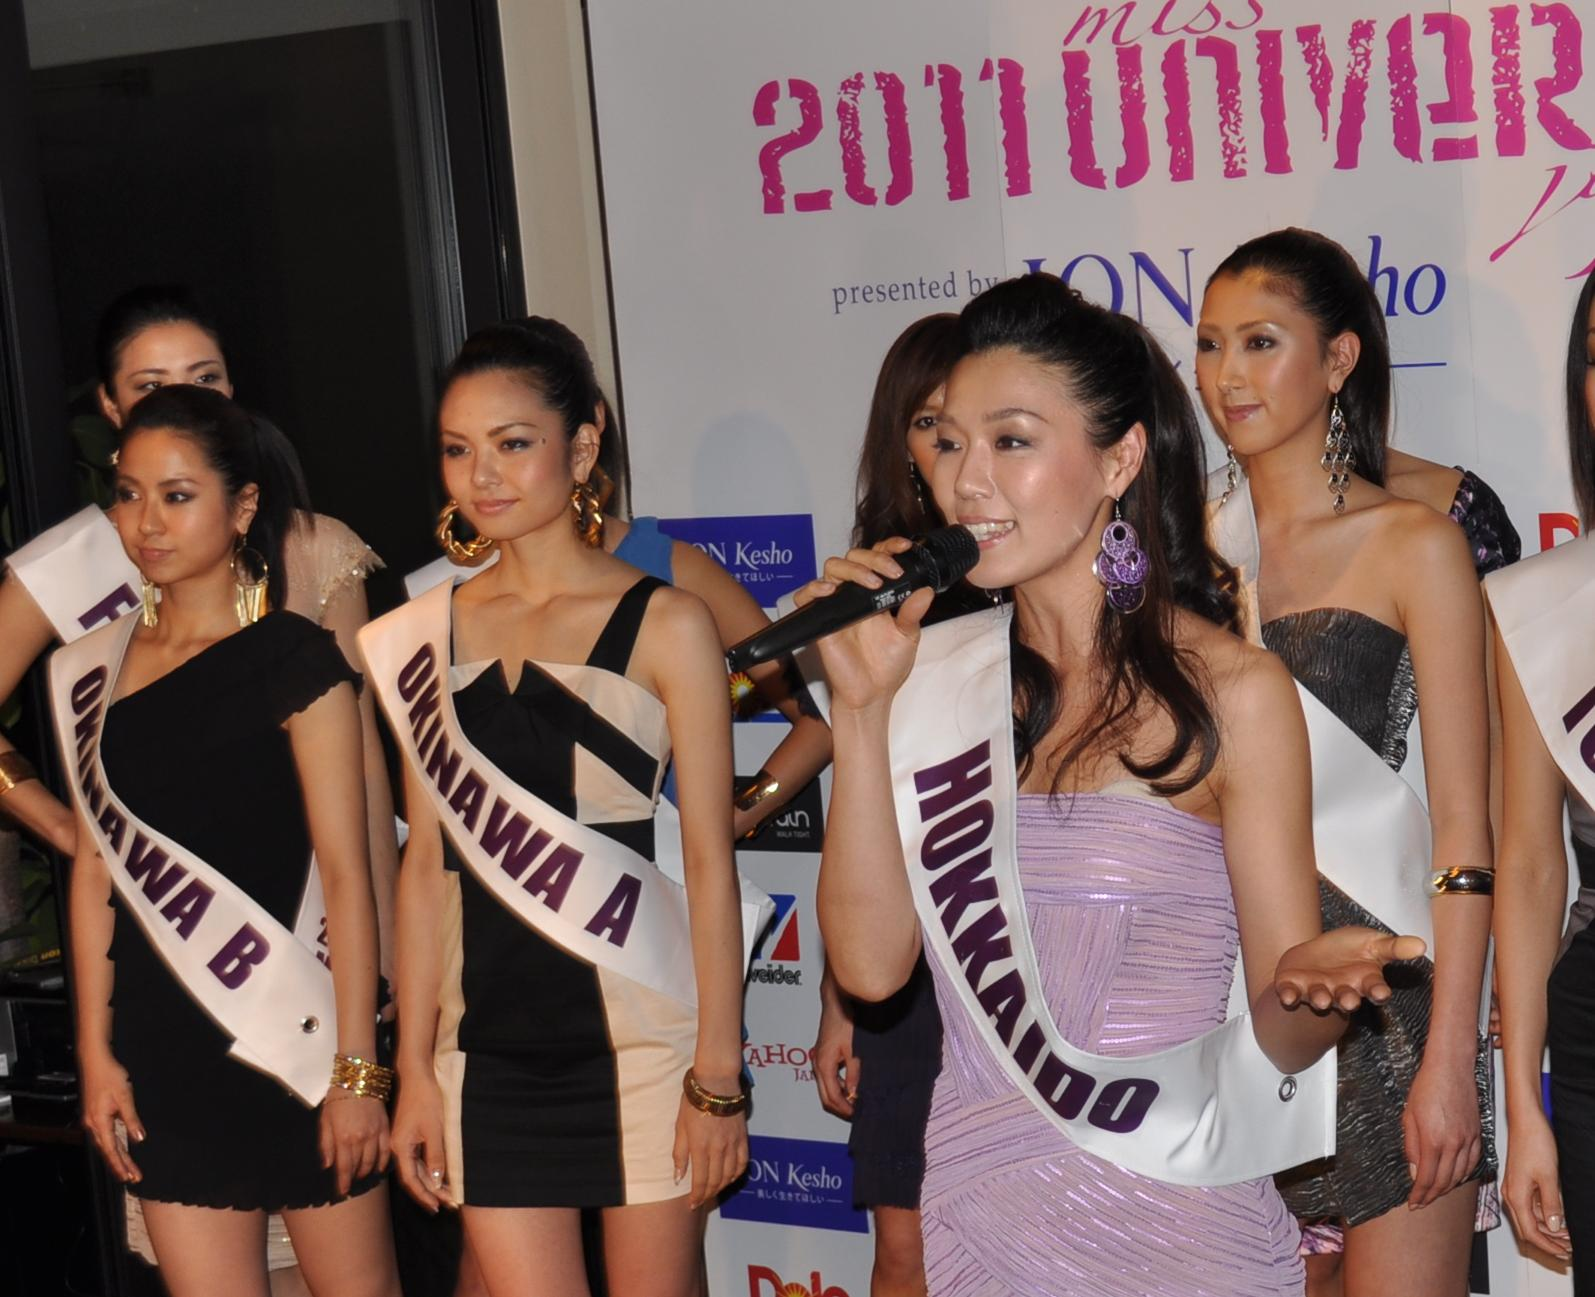 Road to Miss Universe Japan 2011 5590886271_069254b640_o